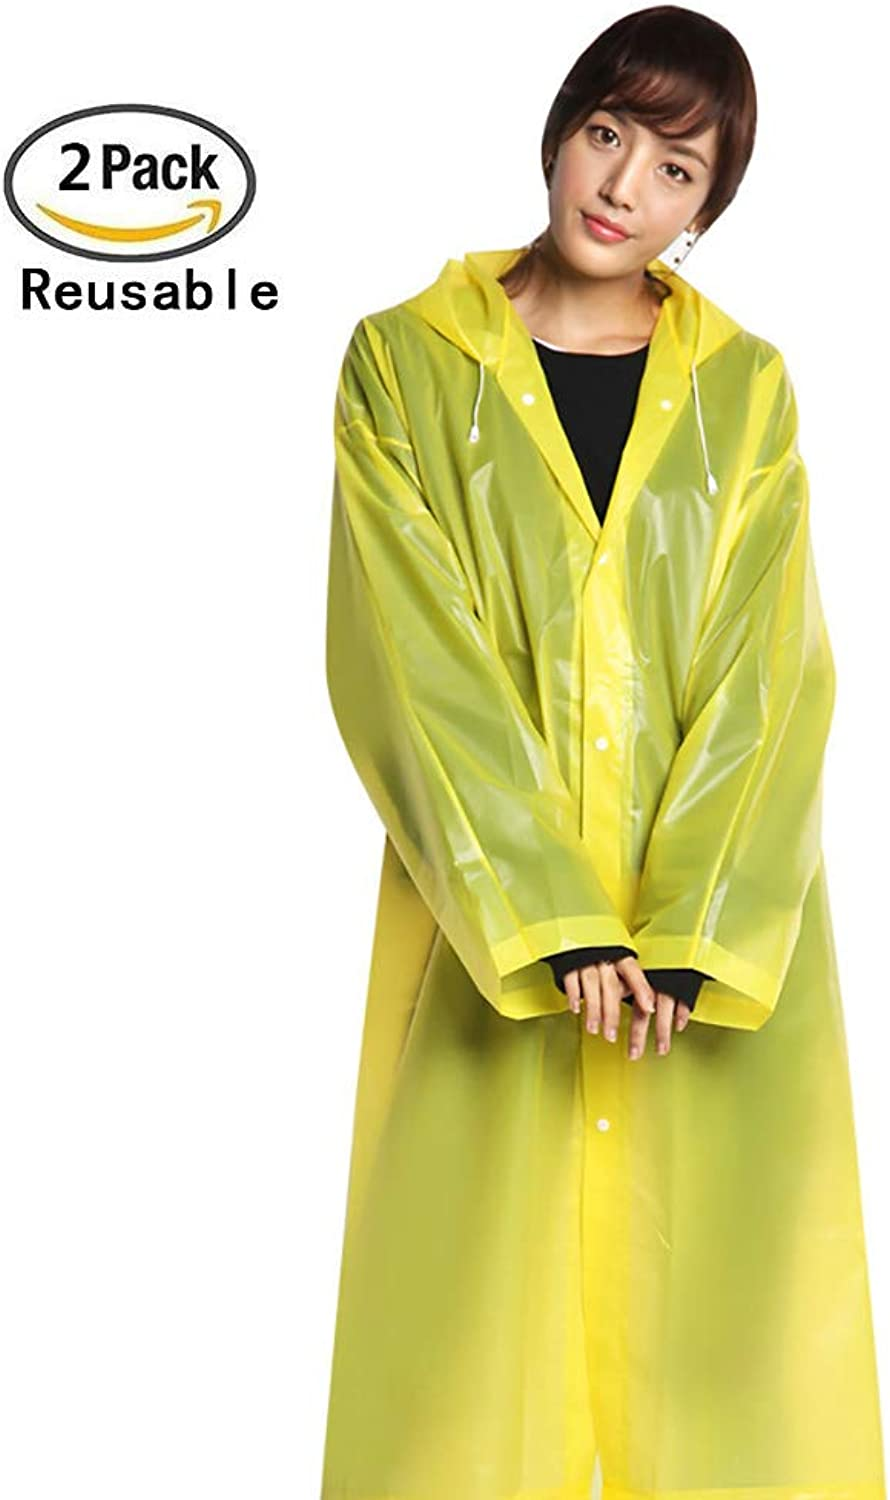 Raincoat, Portable Adult Translucent Hooded Rain Raincoat with Sleeves,Reusable Waterproof Portable Raincoat for Camping,Travel,Mountaineering, Reusable EVA Material,Yellow